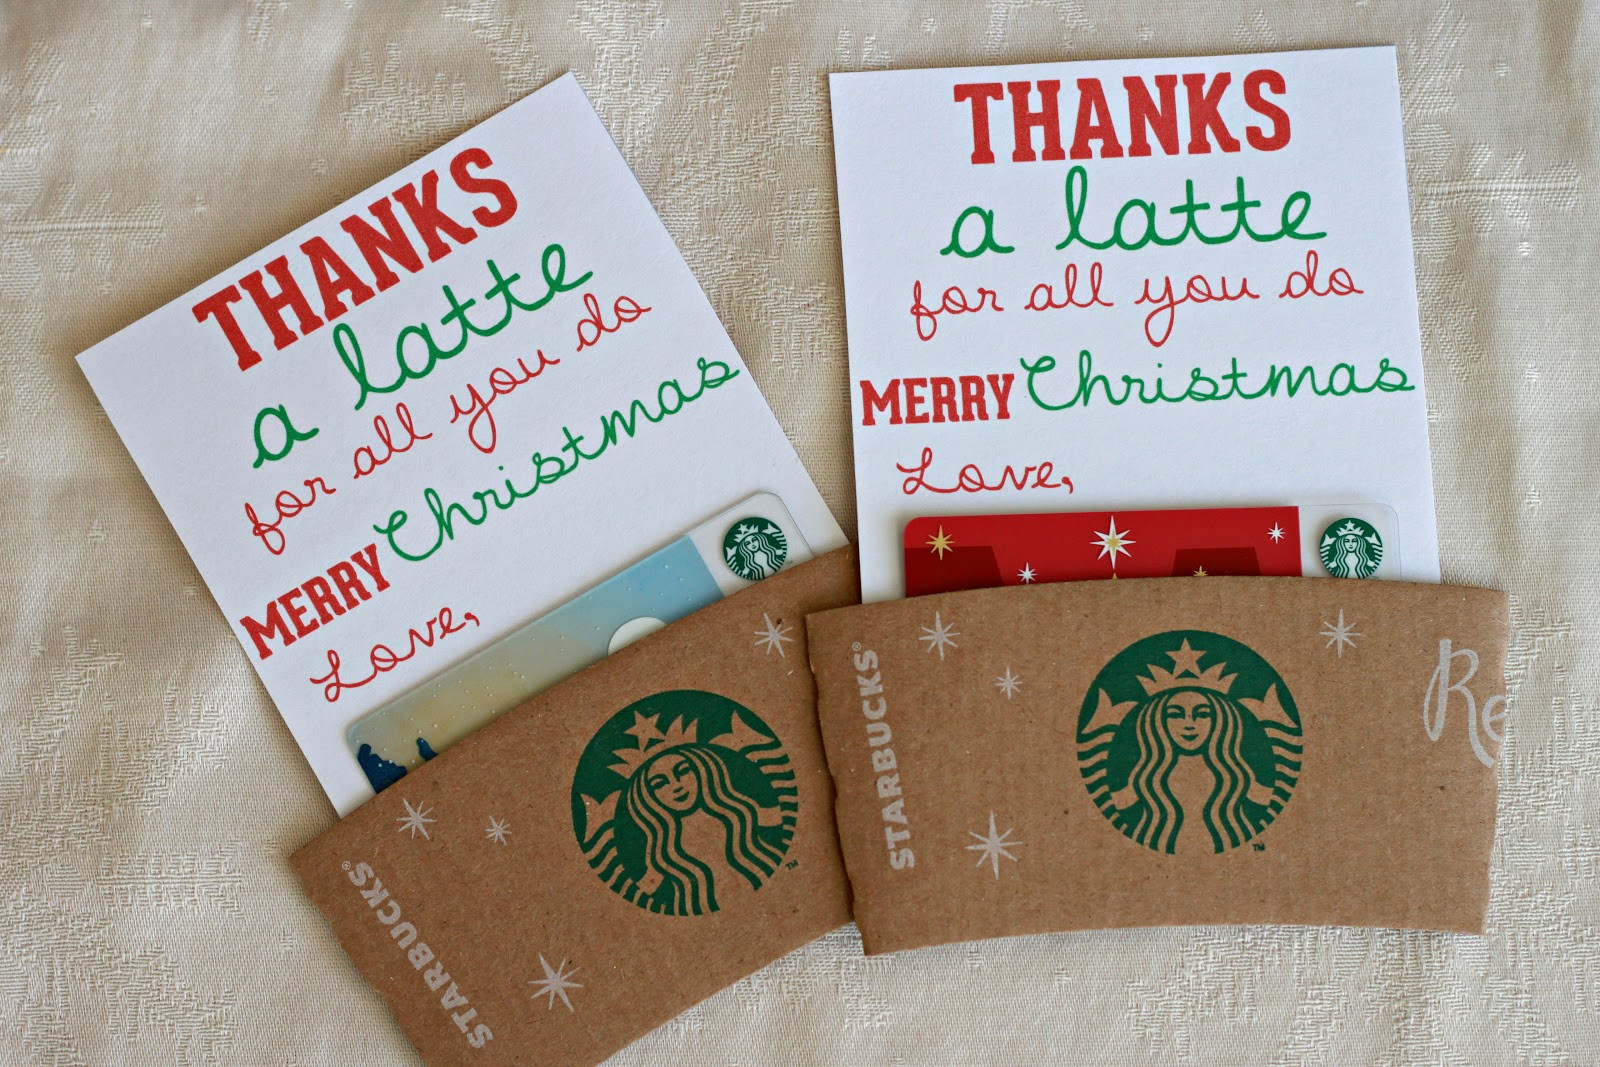 Best ideas about DIY Christmas Gift . Save or Pin Man Starkey thanks a latte Now.